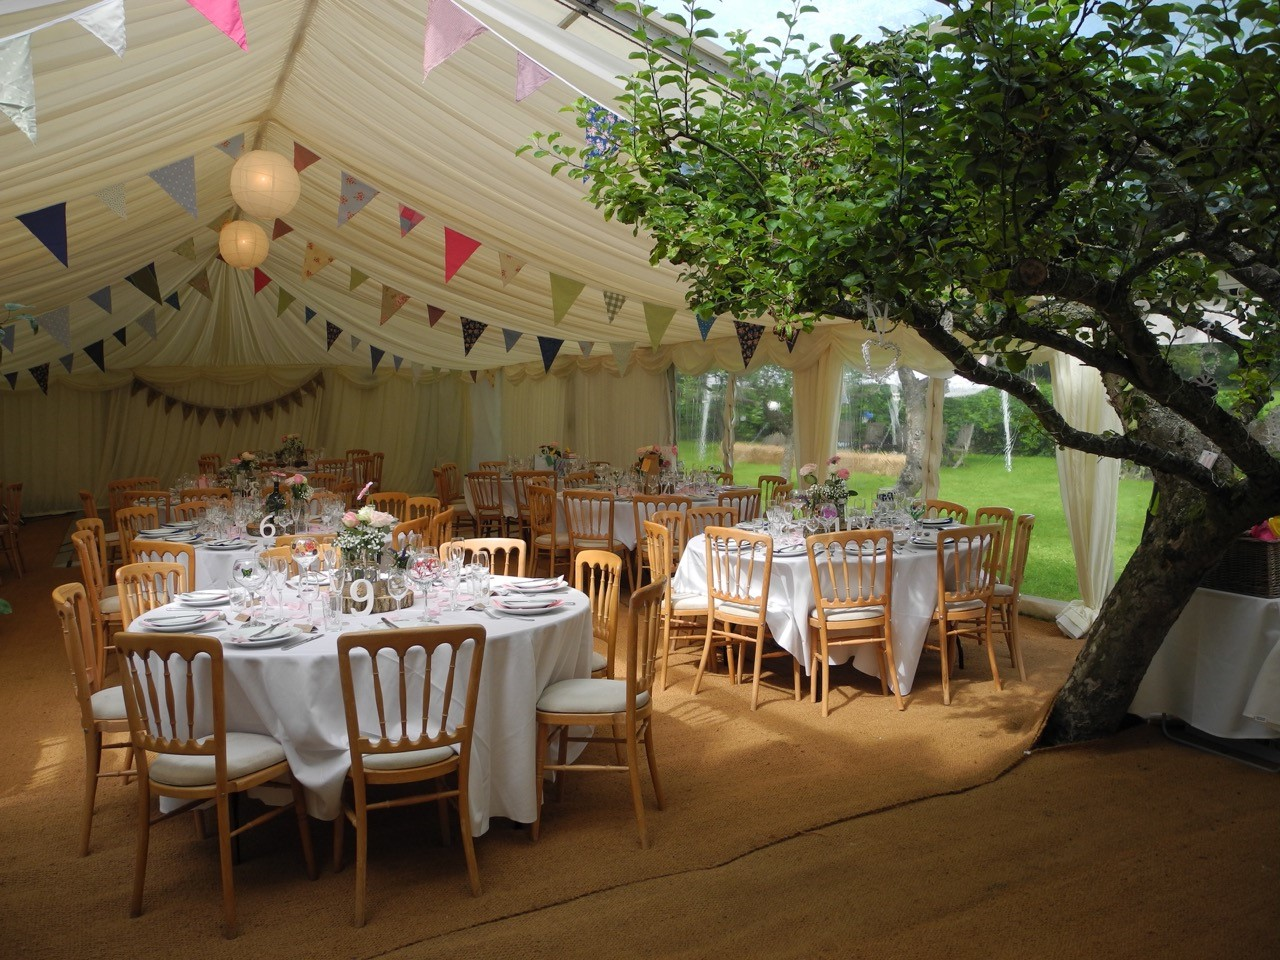 marquee bunting wedding in orchard